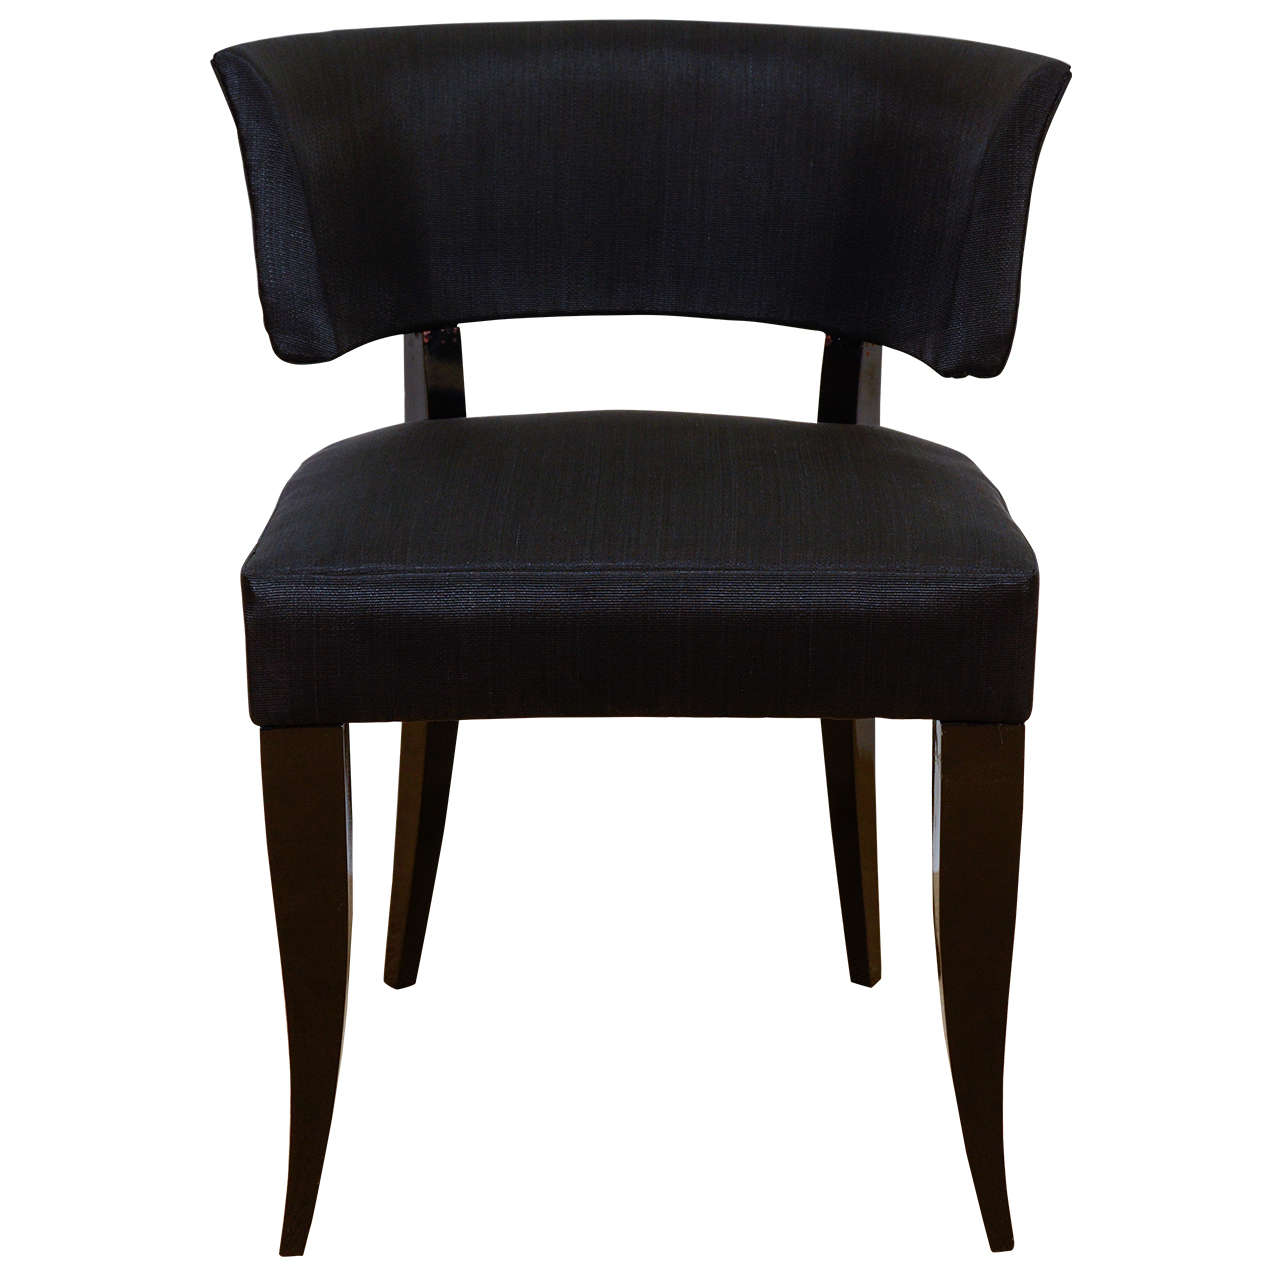 Iteminformation as well Upholstered Living Room Chairs With Arms in addition Id F 524511 besides Id F 606645 together with Klismos Chairs. on upholstered klismos dining chair